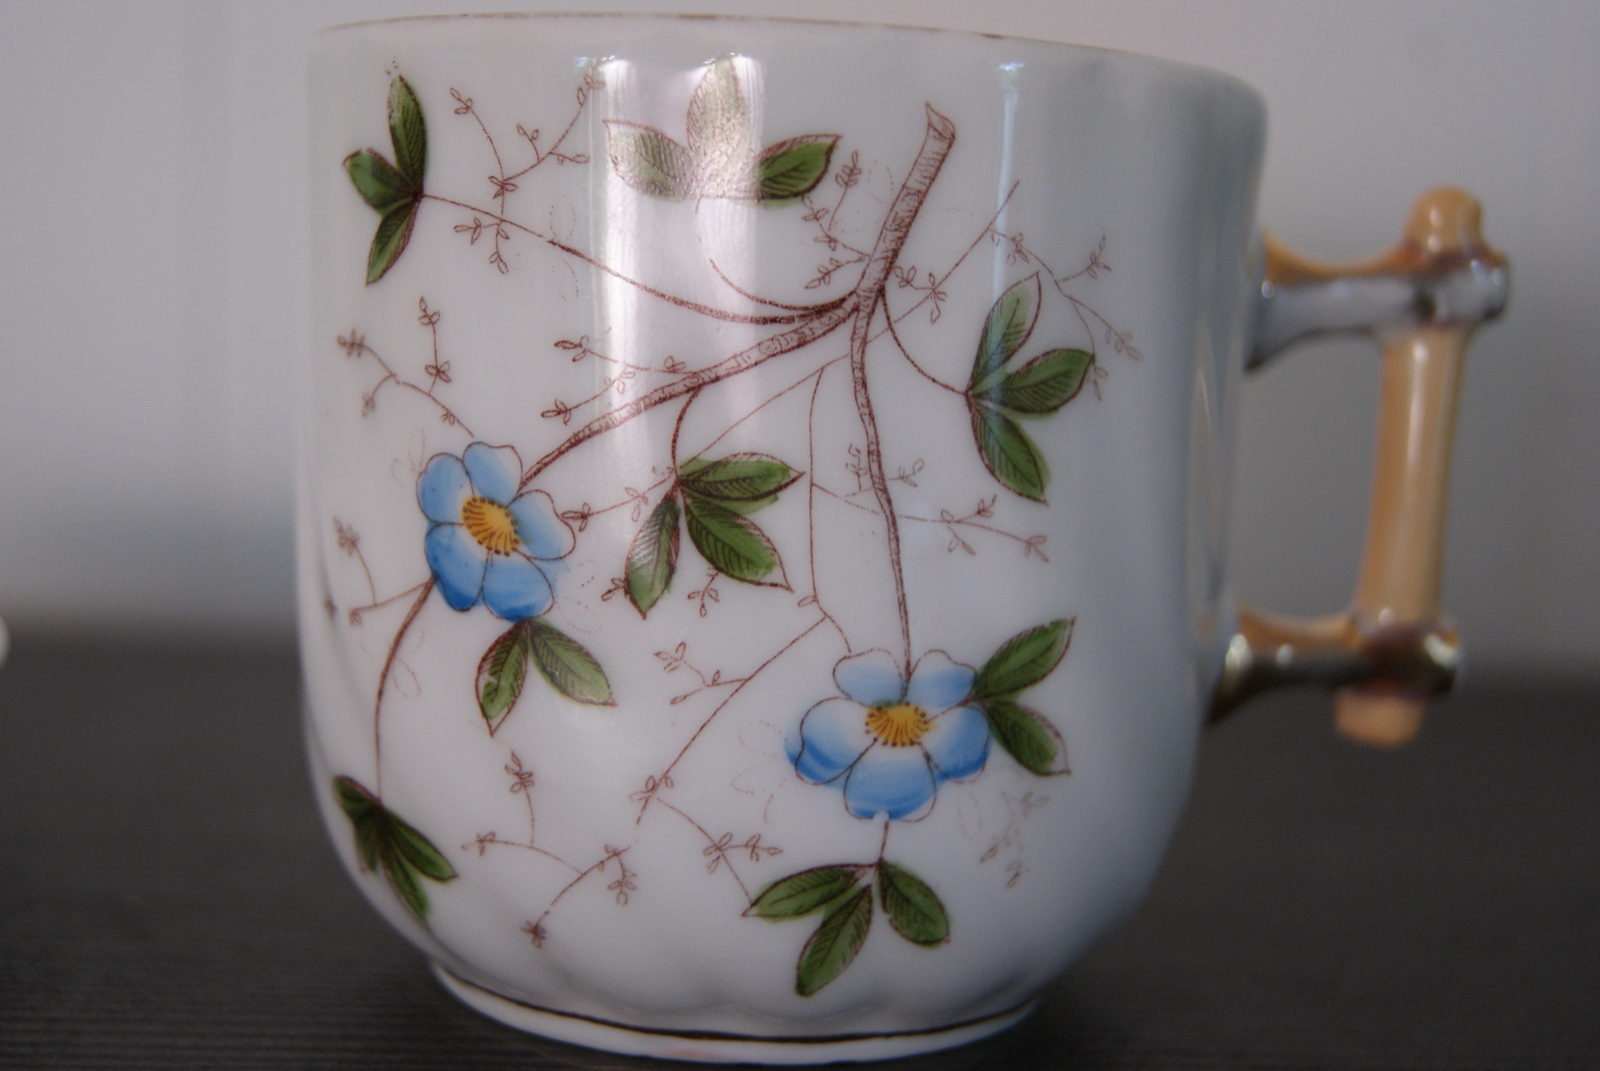 Porsgrund coffee cup with blue flowers, leaves and with handle like a stick